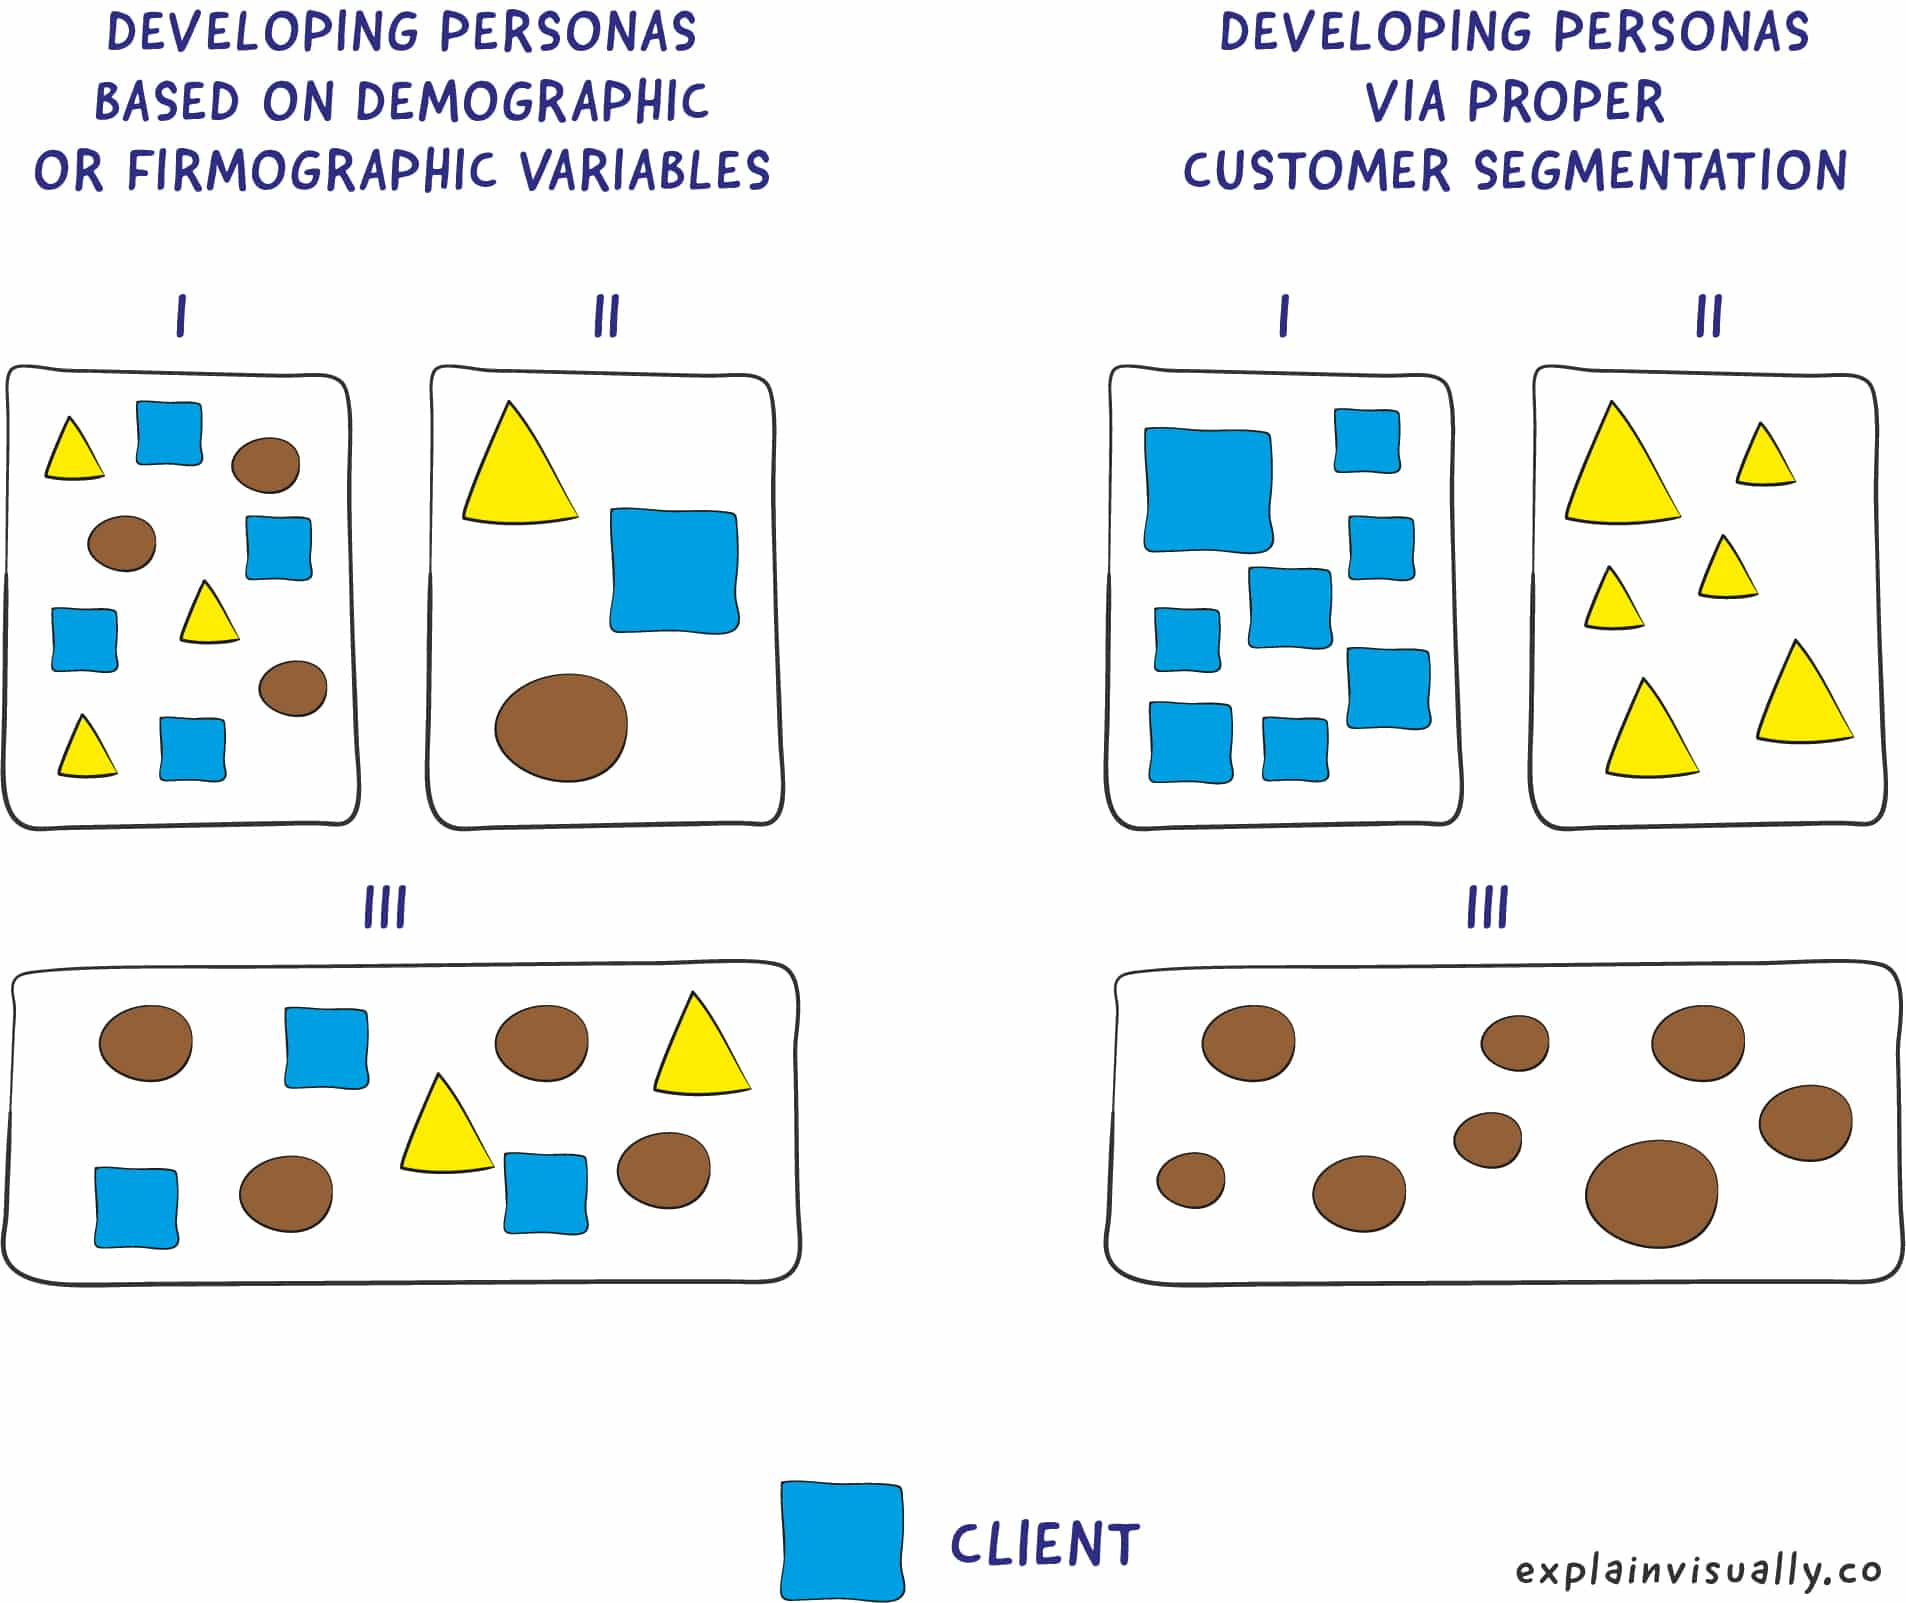 different shapes shown as methaphors for bad personas and good customer segmentation